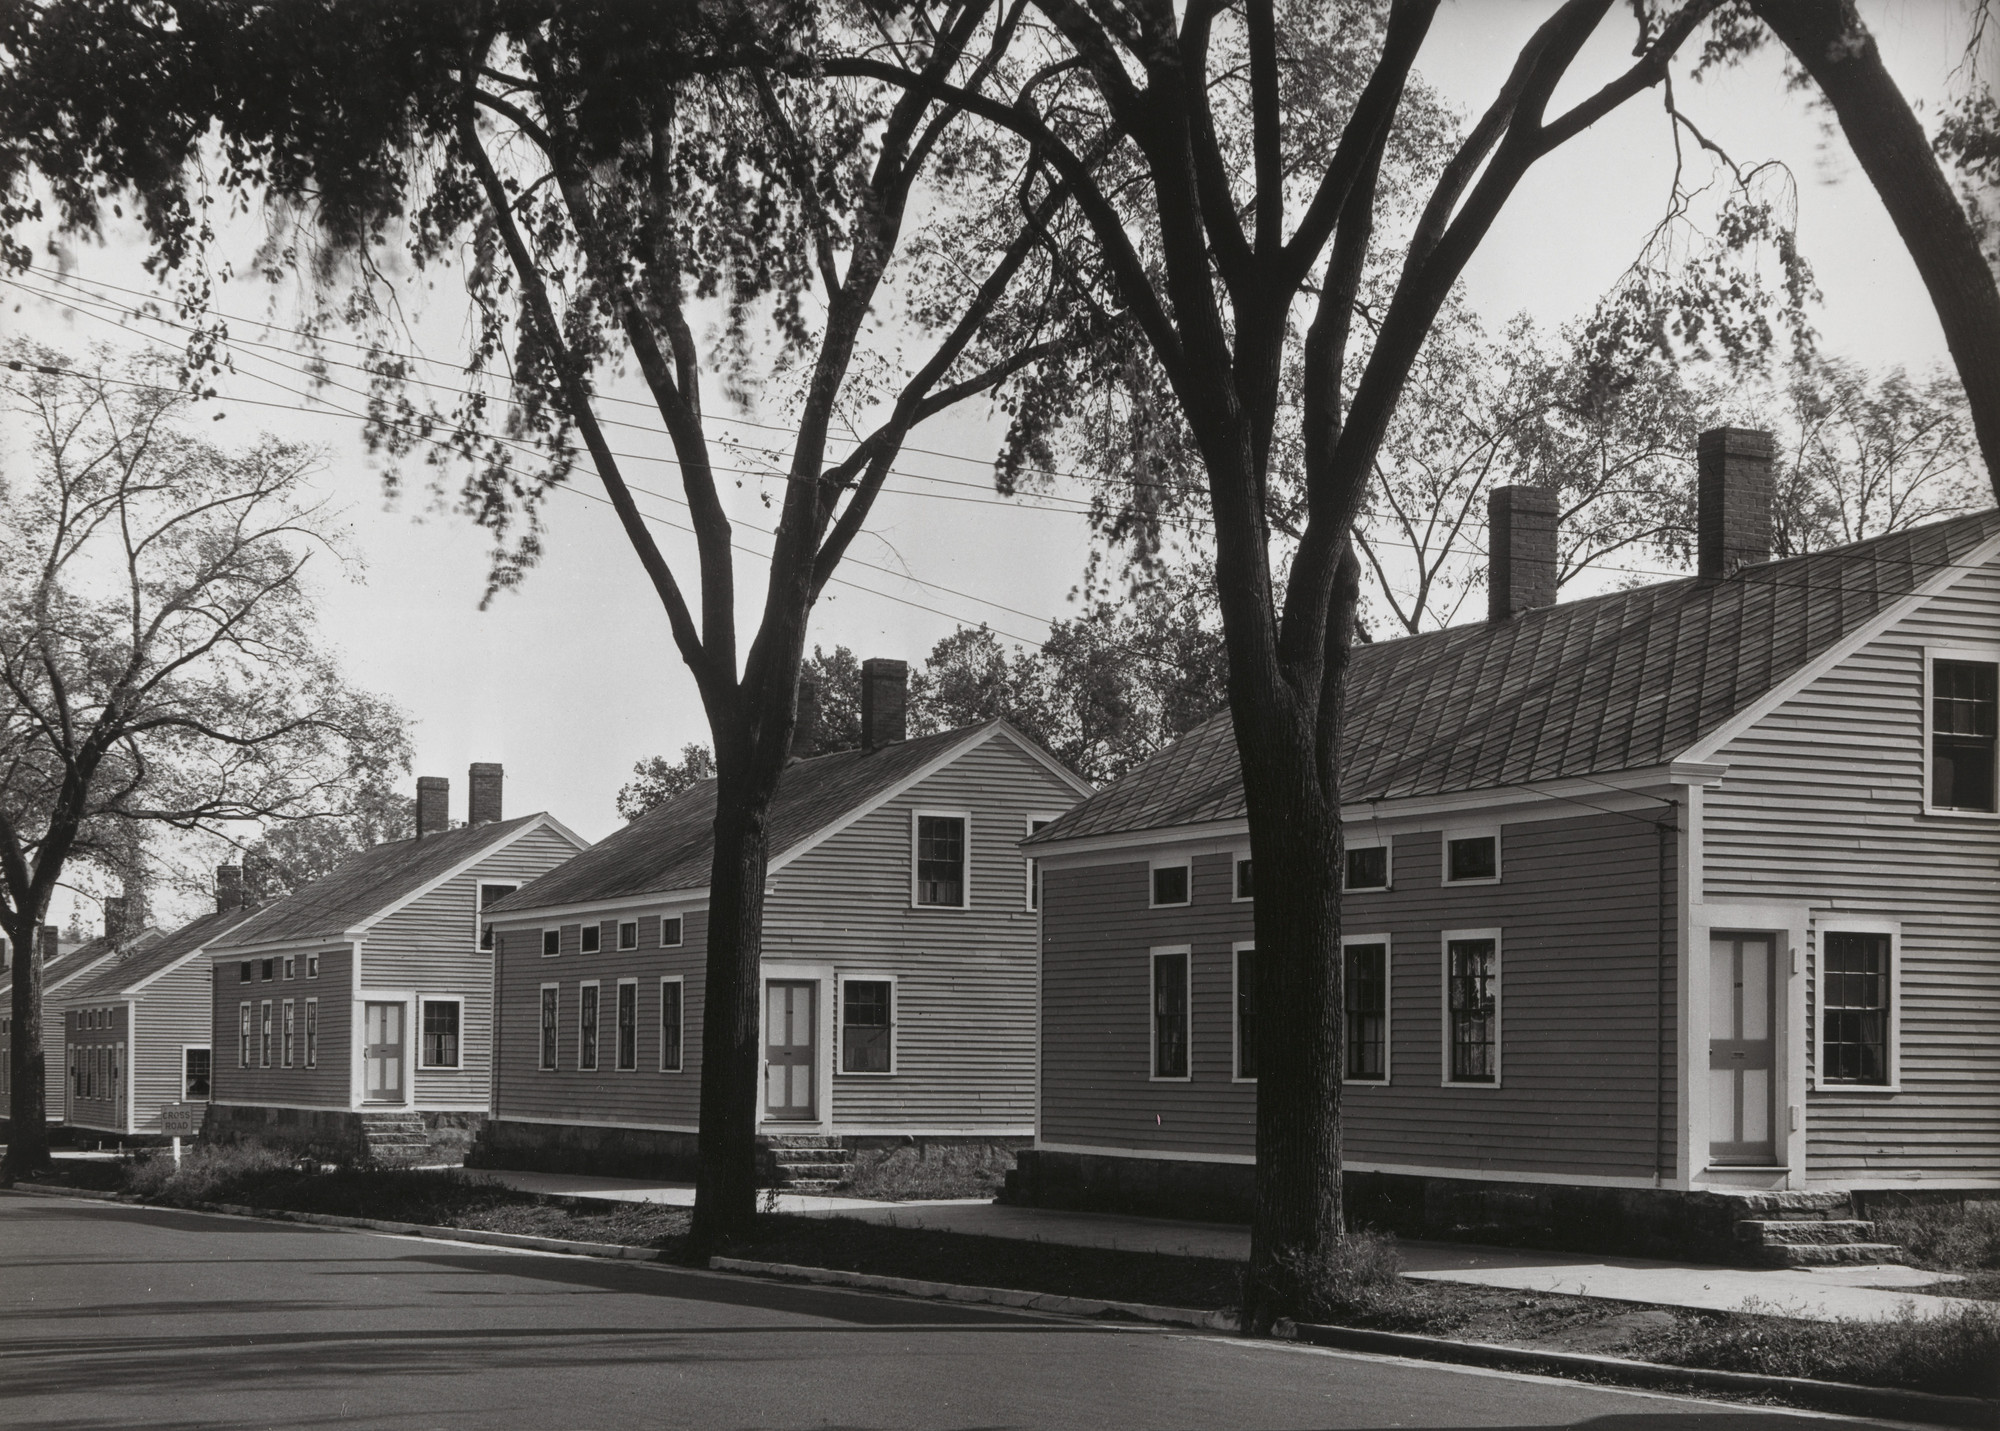 Walker Evans. Millworkers' Houses in Willimantic, Connecticut. 1931